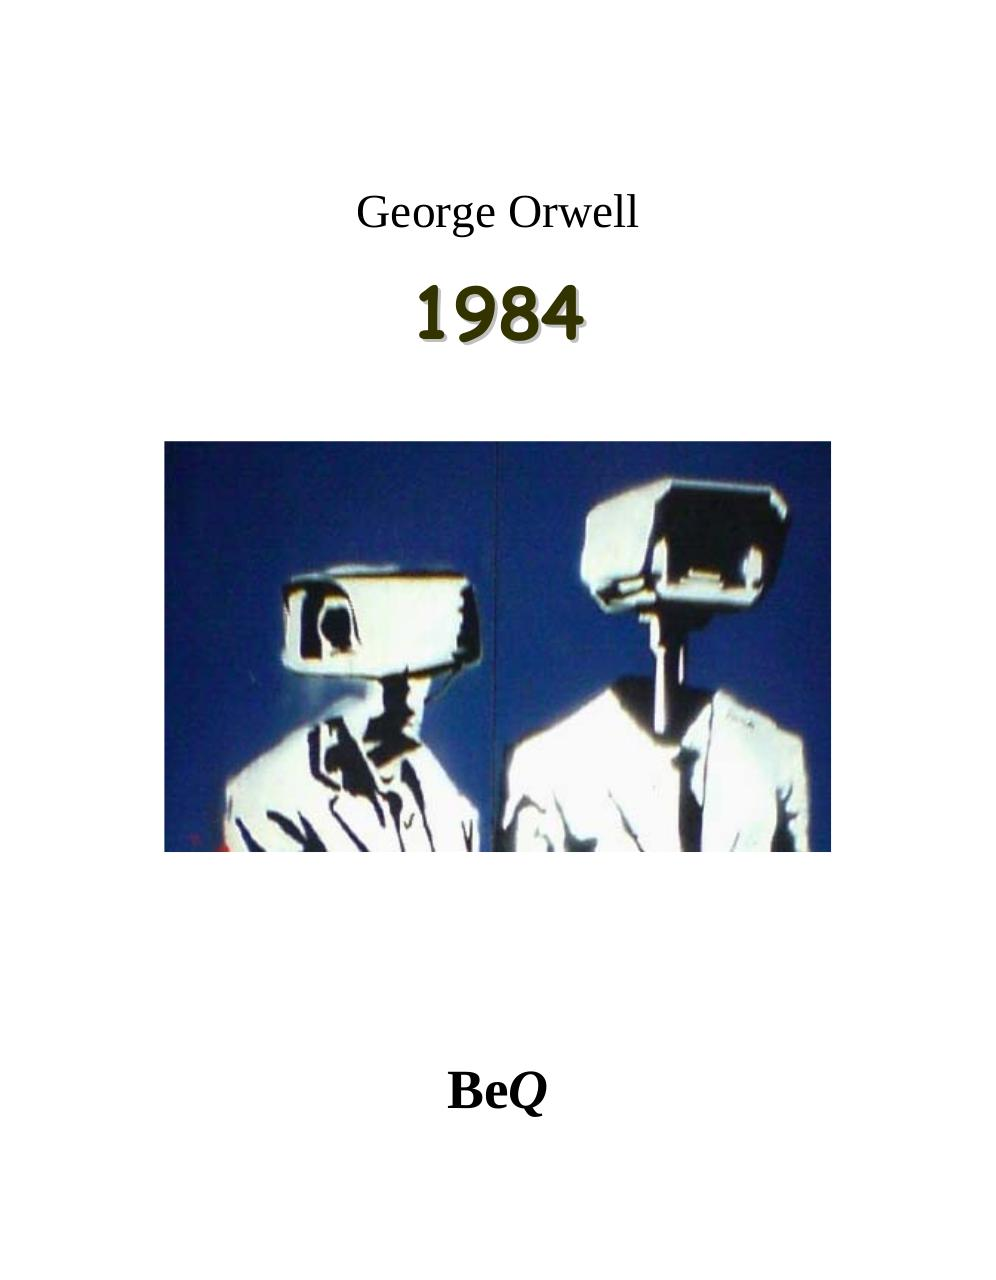 george orwell s 1984 relationship between media 1984, george orwell introduction : definitions hierarchy of characters orwell : any form of totalitarianism threatens the uniqueness of the individual none of us are free of this power of oppression the relation between o'brien and winston is that of the torturer and the tortured.